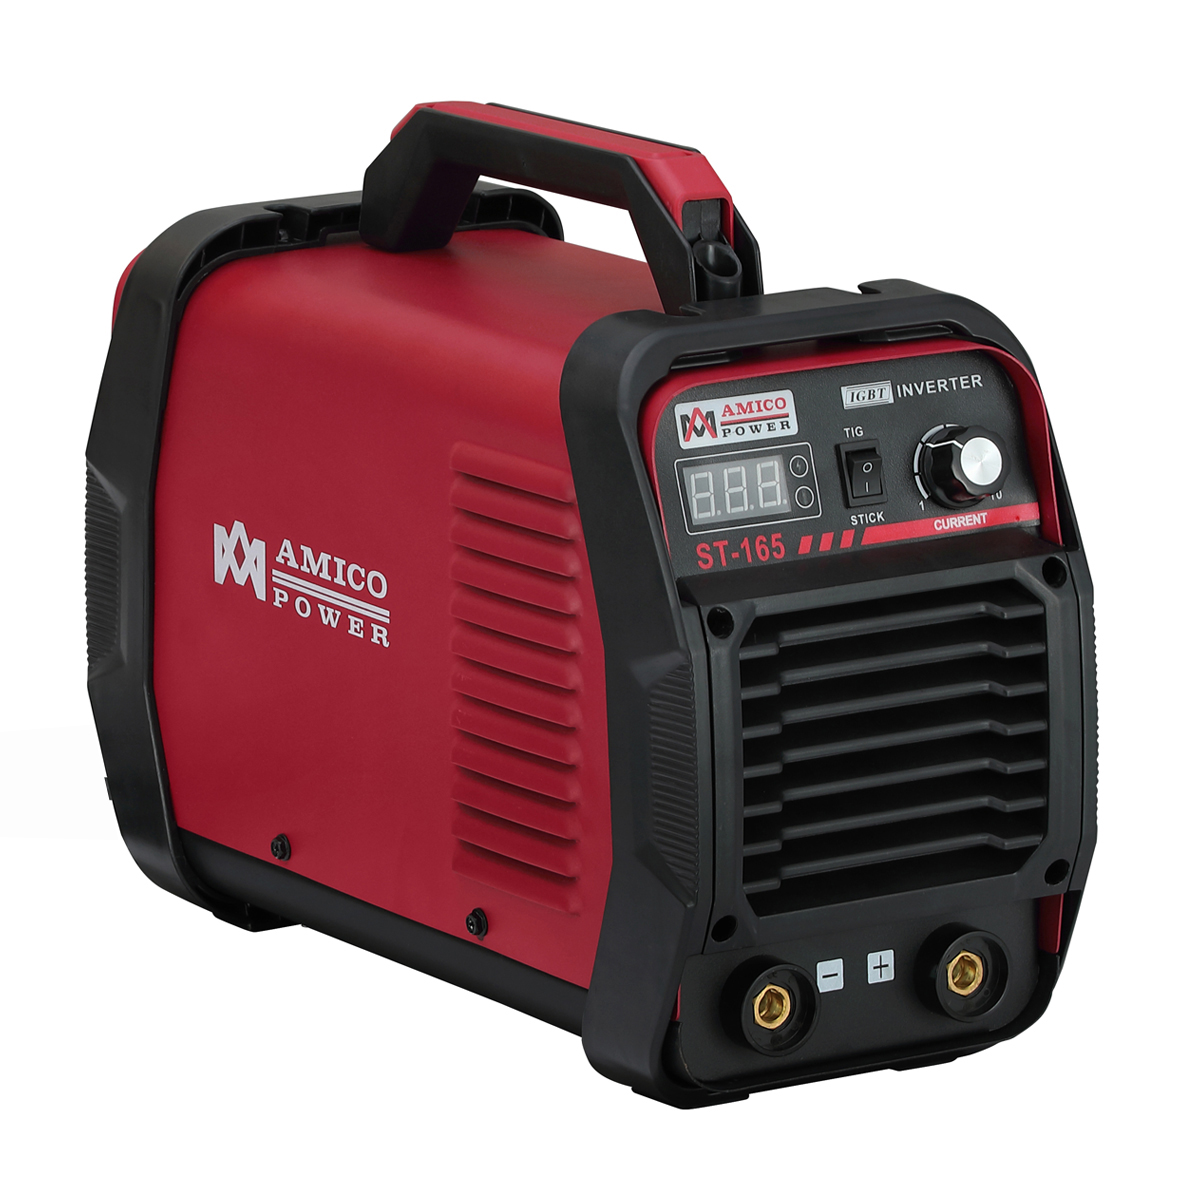 ST-165, 165 Amp Lift-TIG/Stick/ARC DC Welder 110/230V Dual Voltage Welding